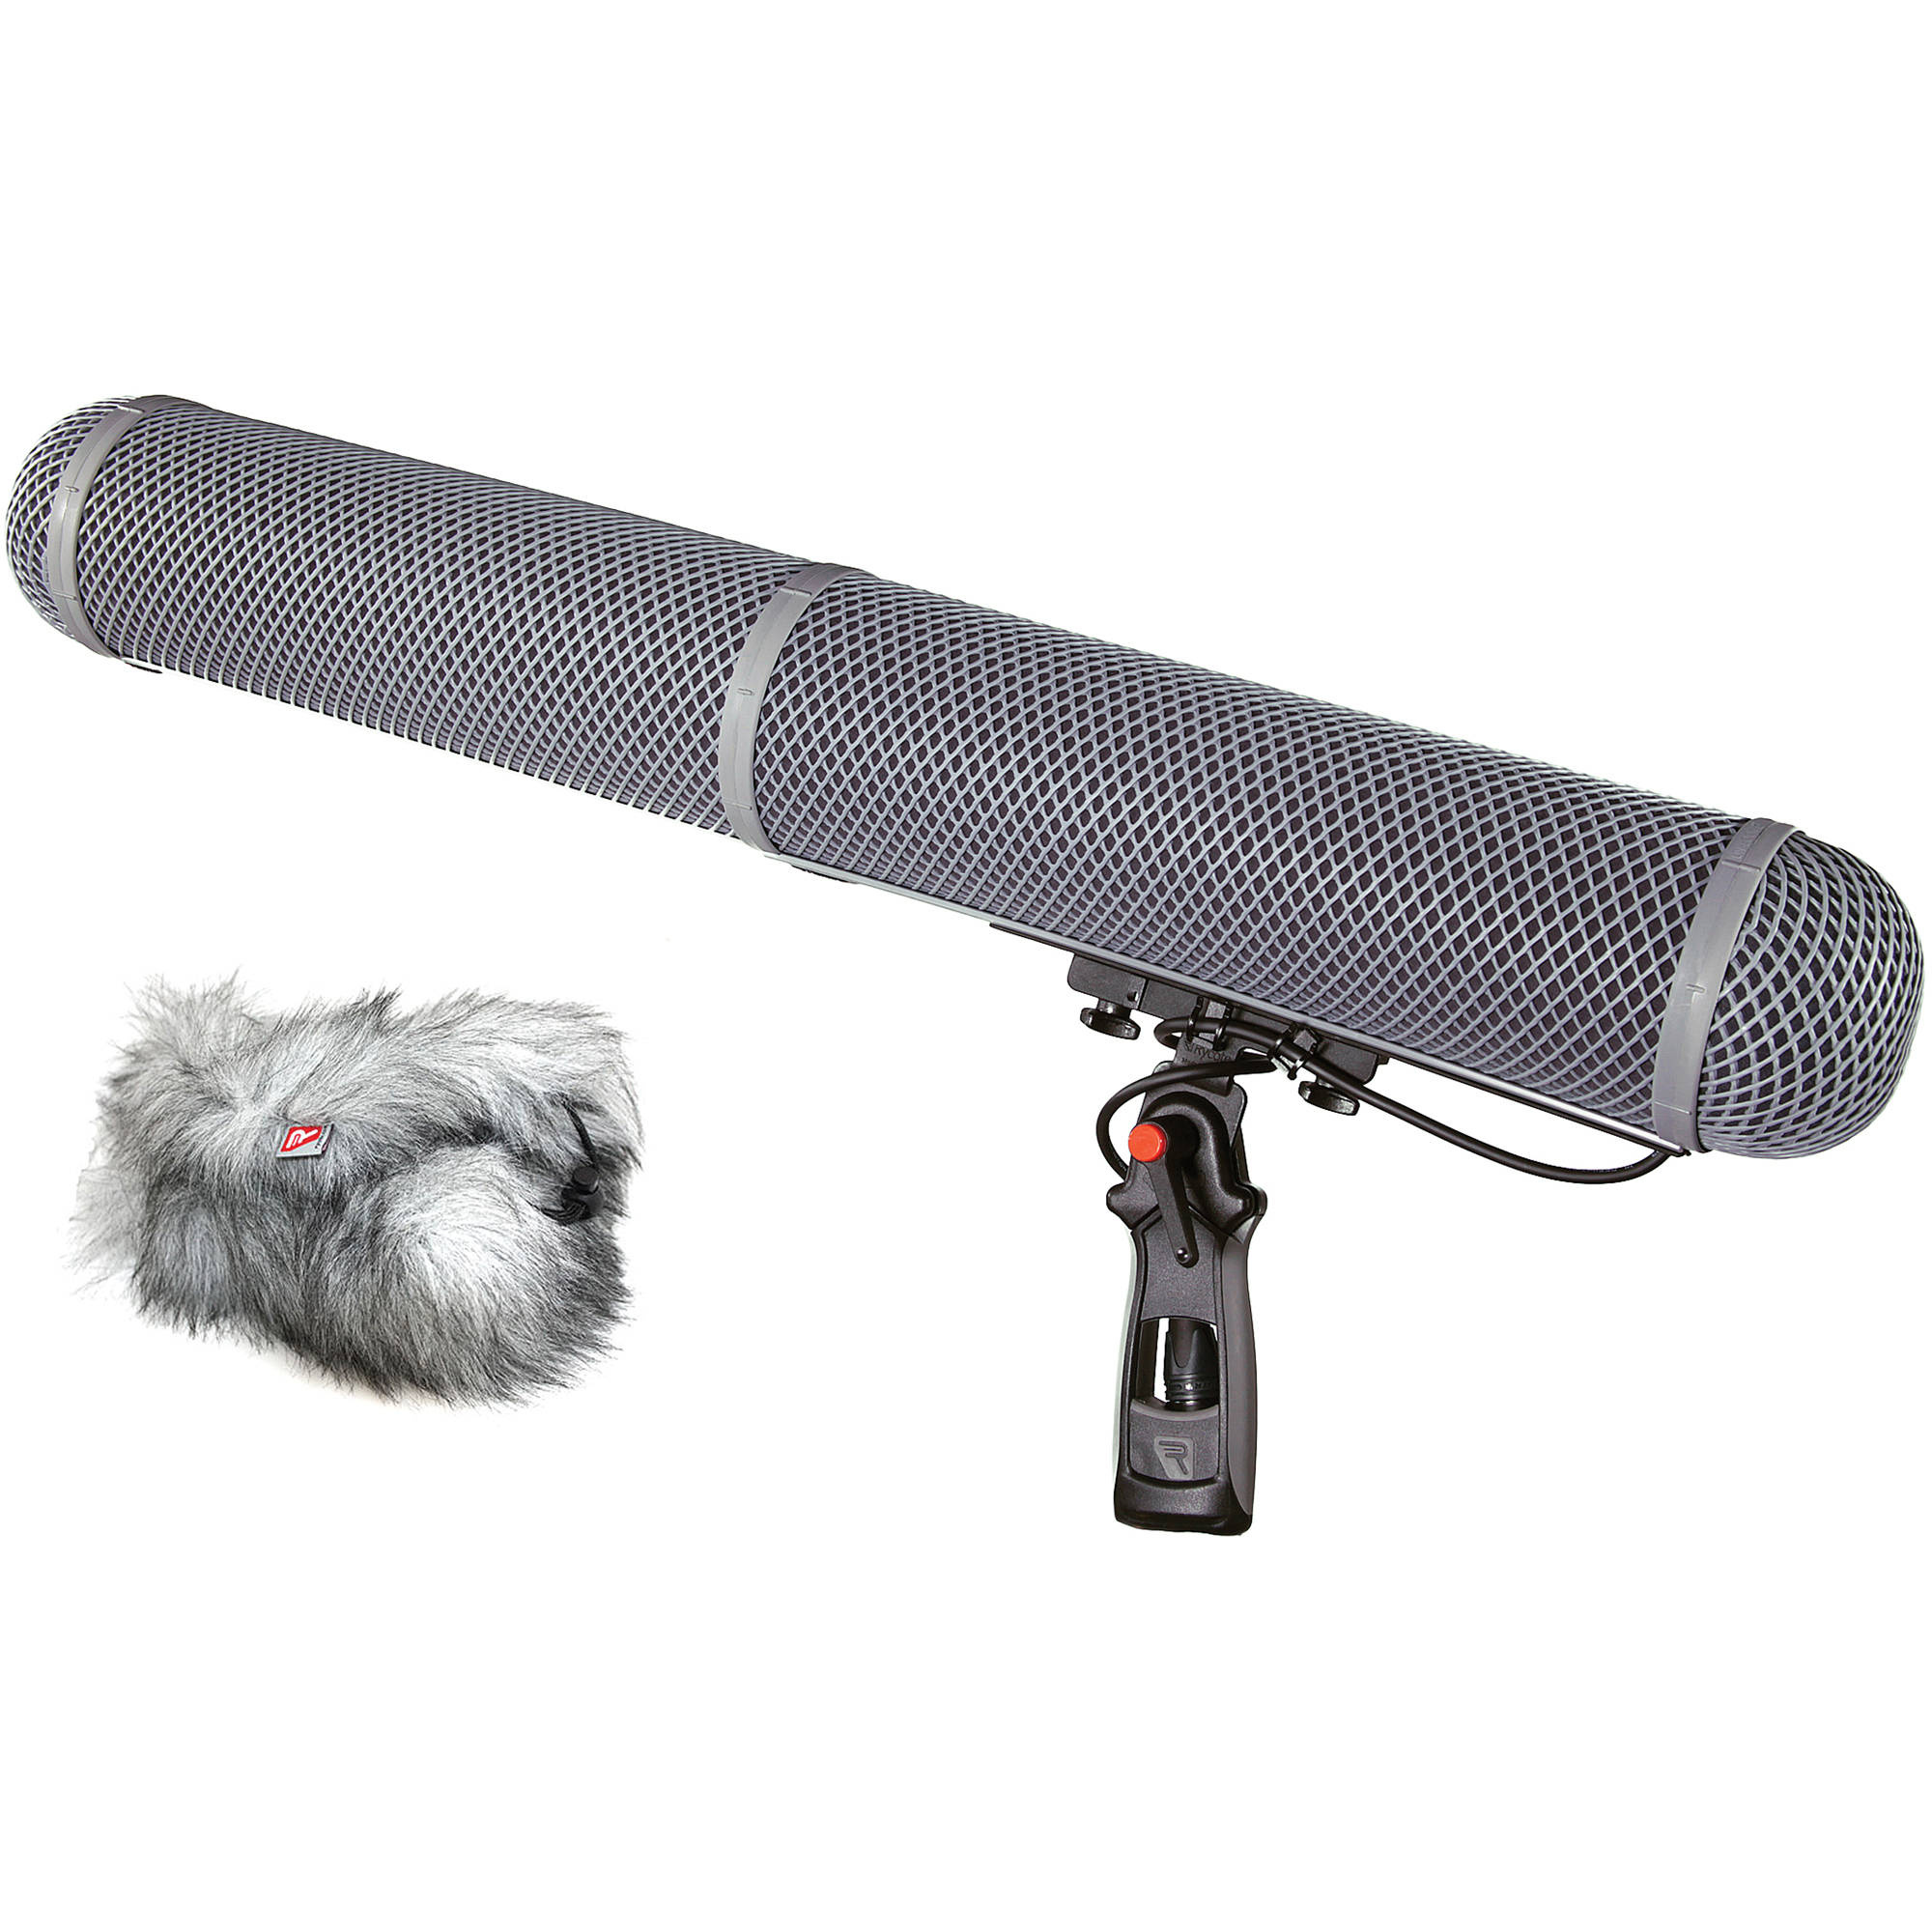 Rycote Windshield Kit 11 - Complete Windshield and Suspension System